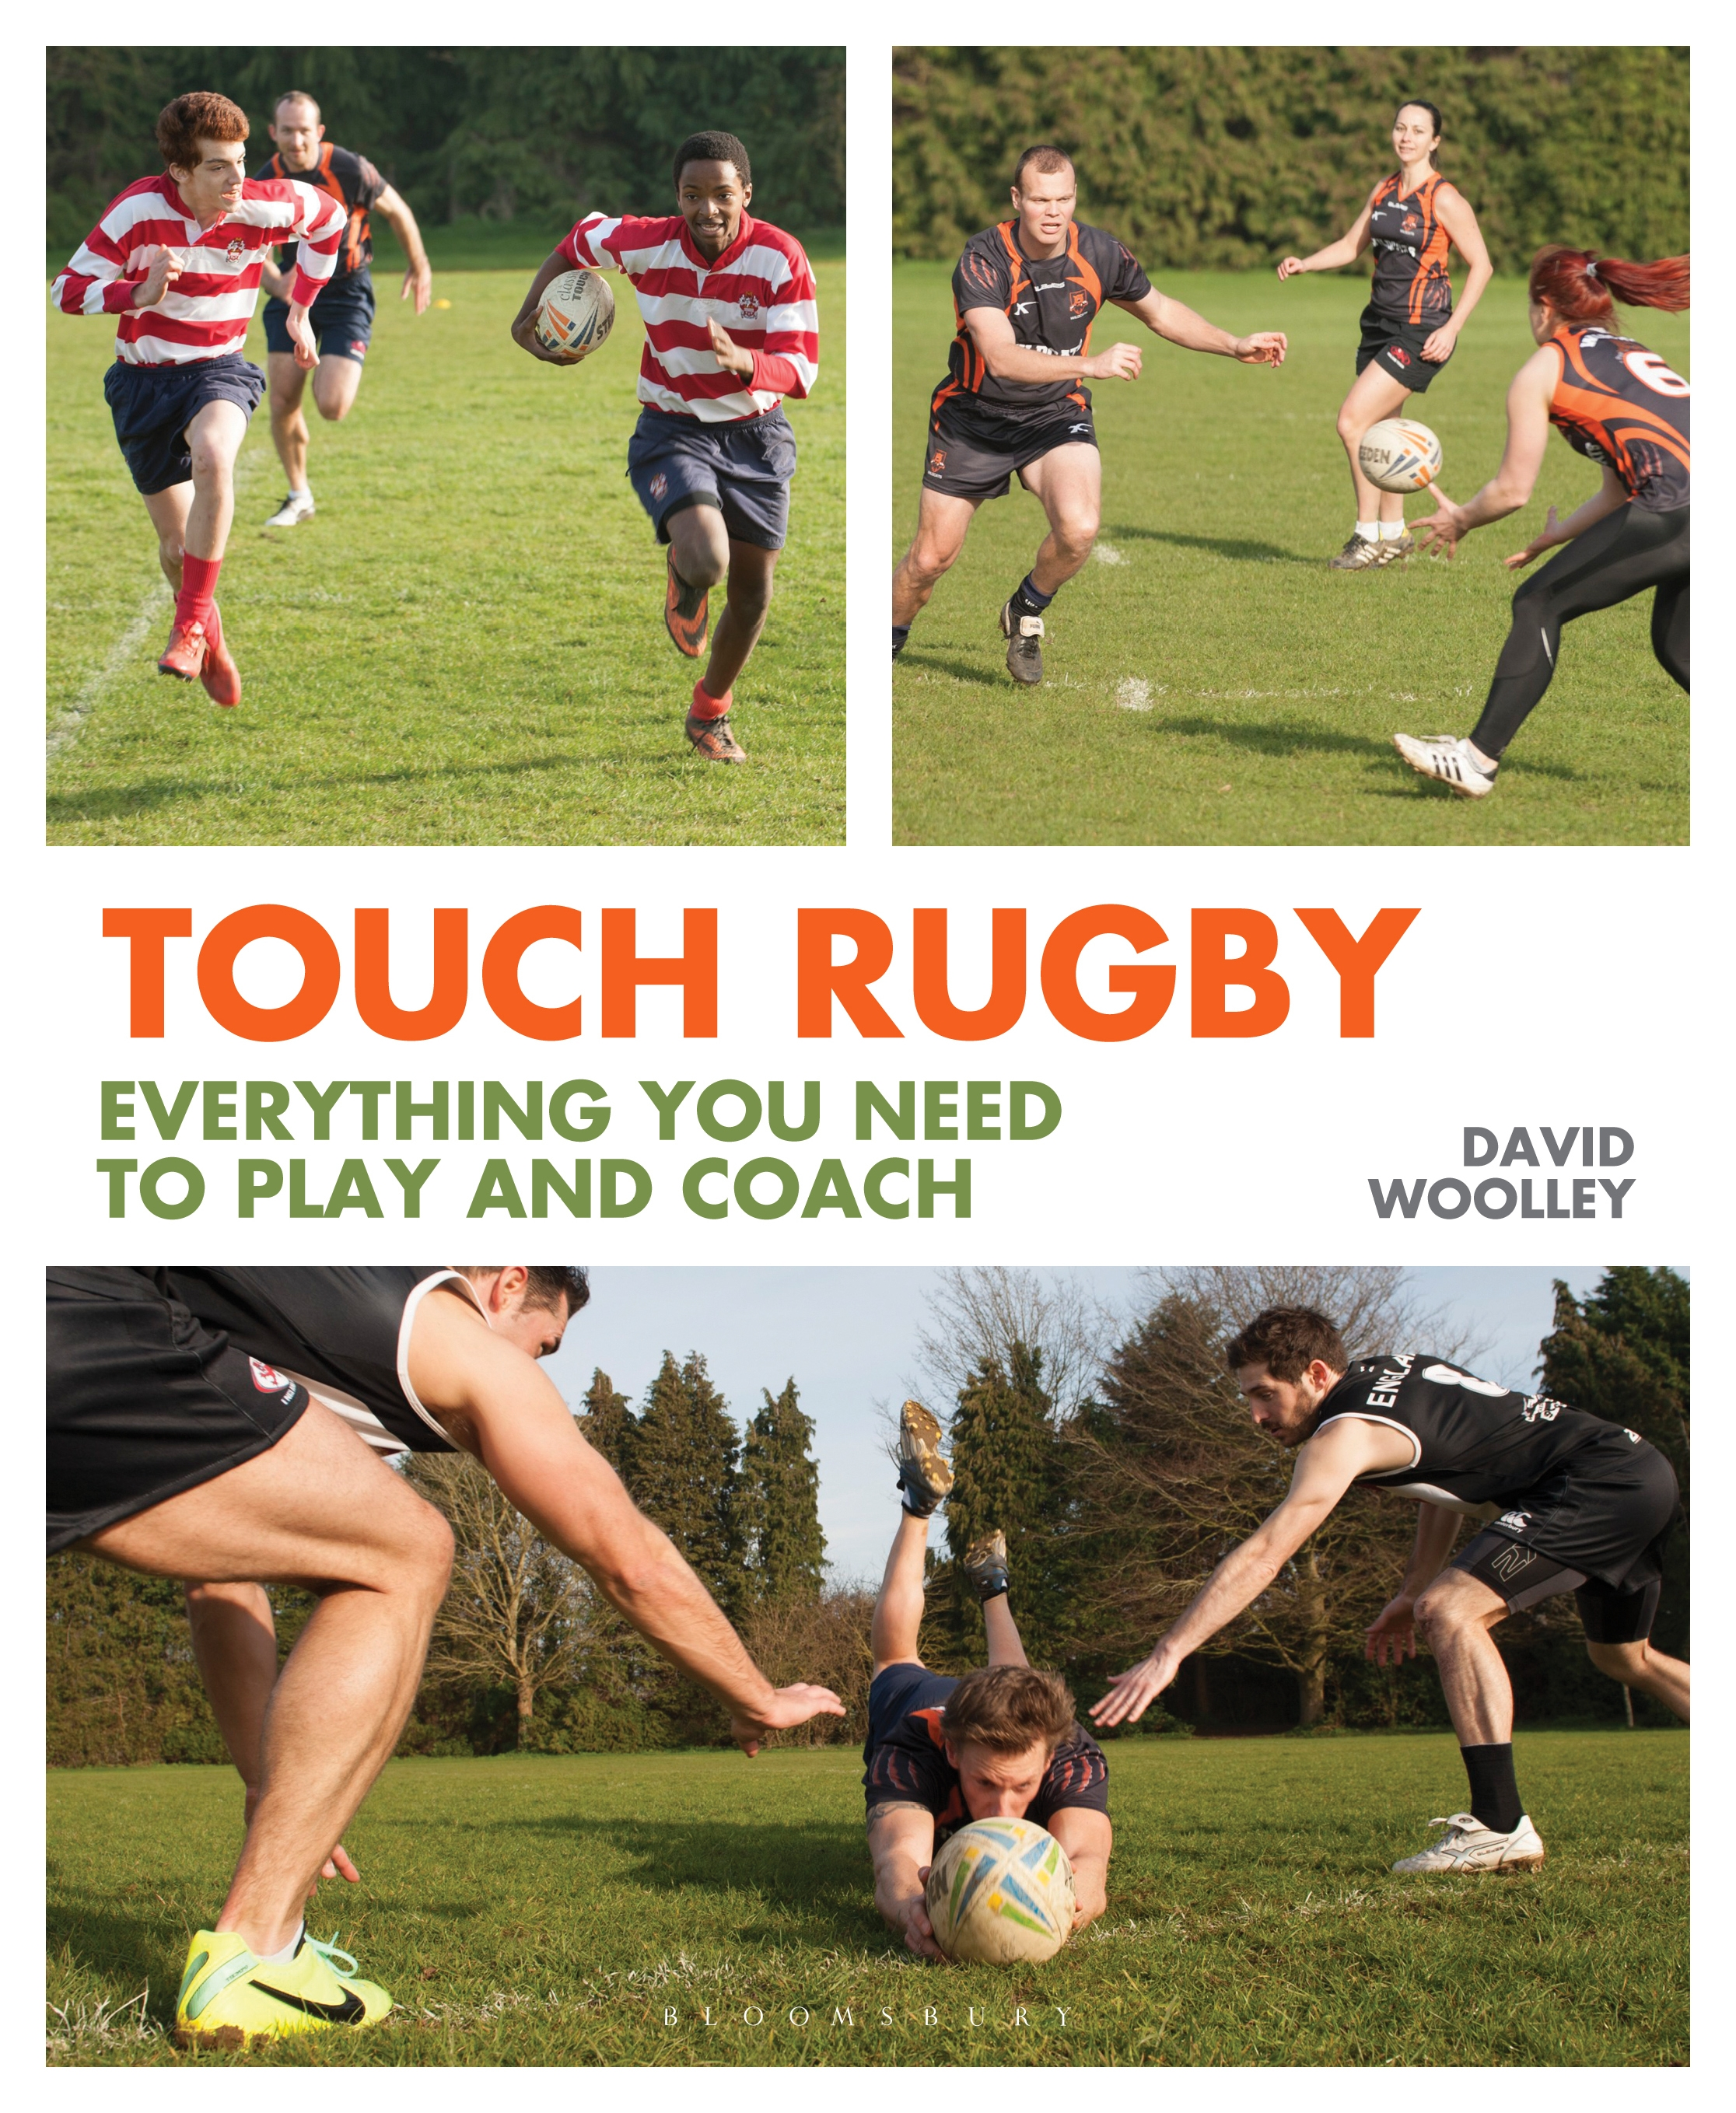 Touch Rugby Everything You Need to Play and Coach